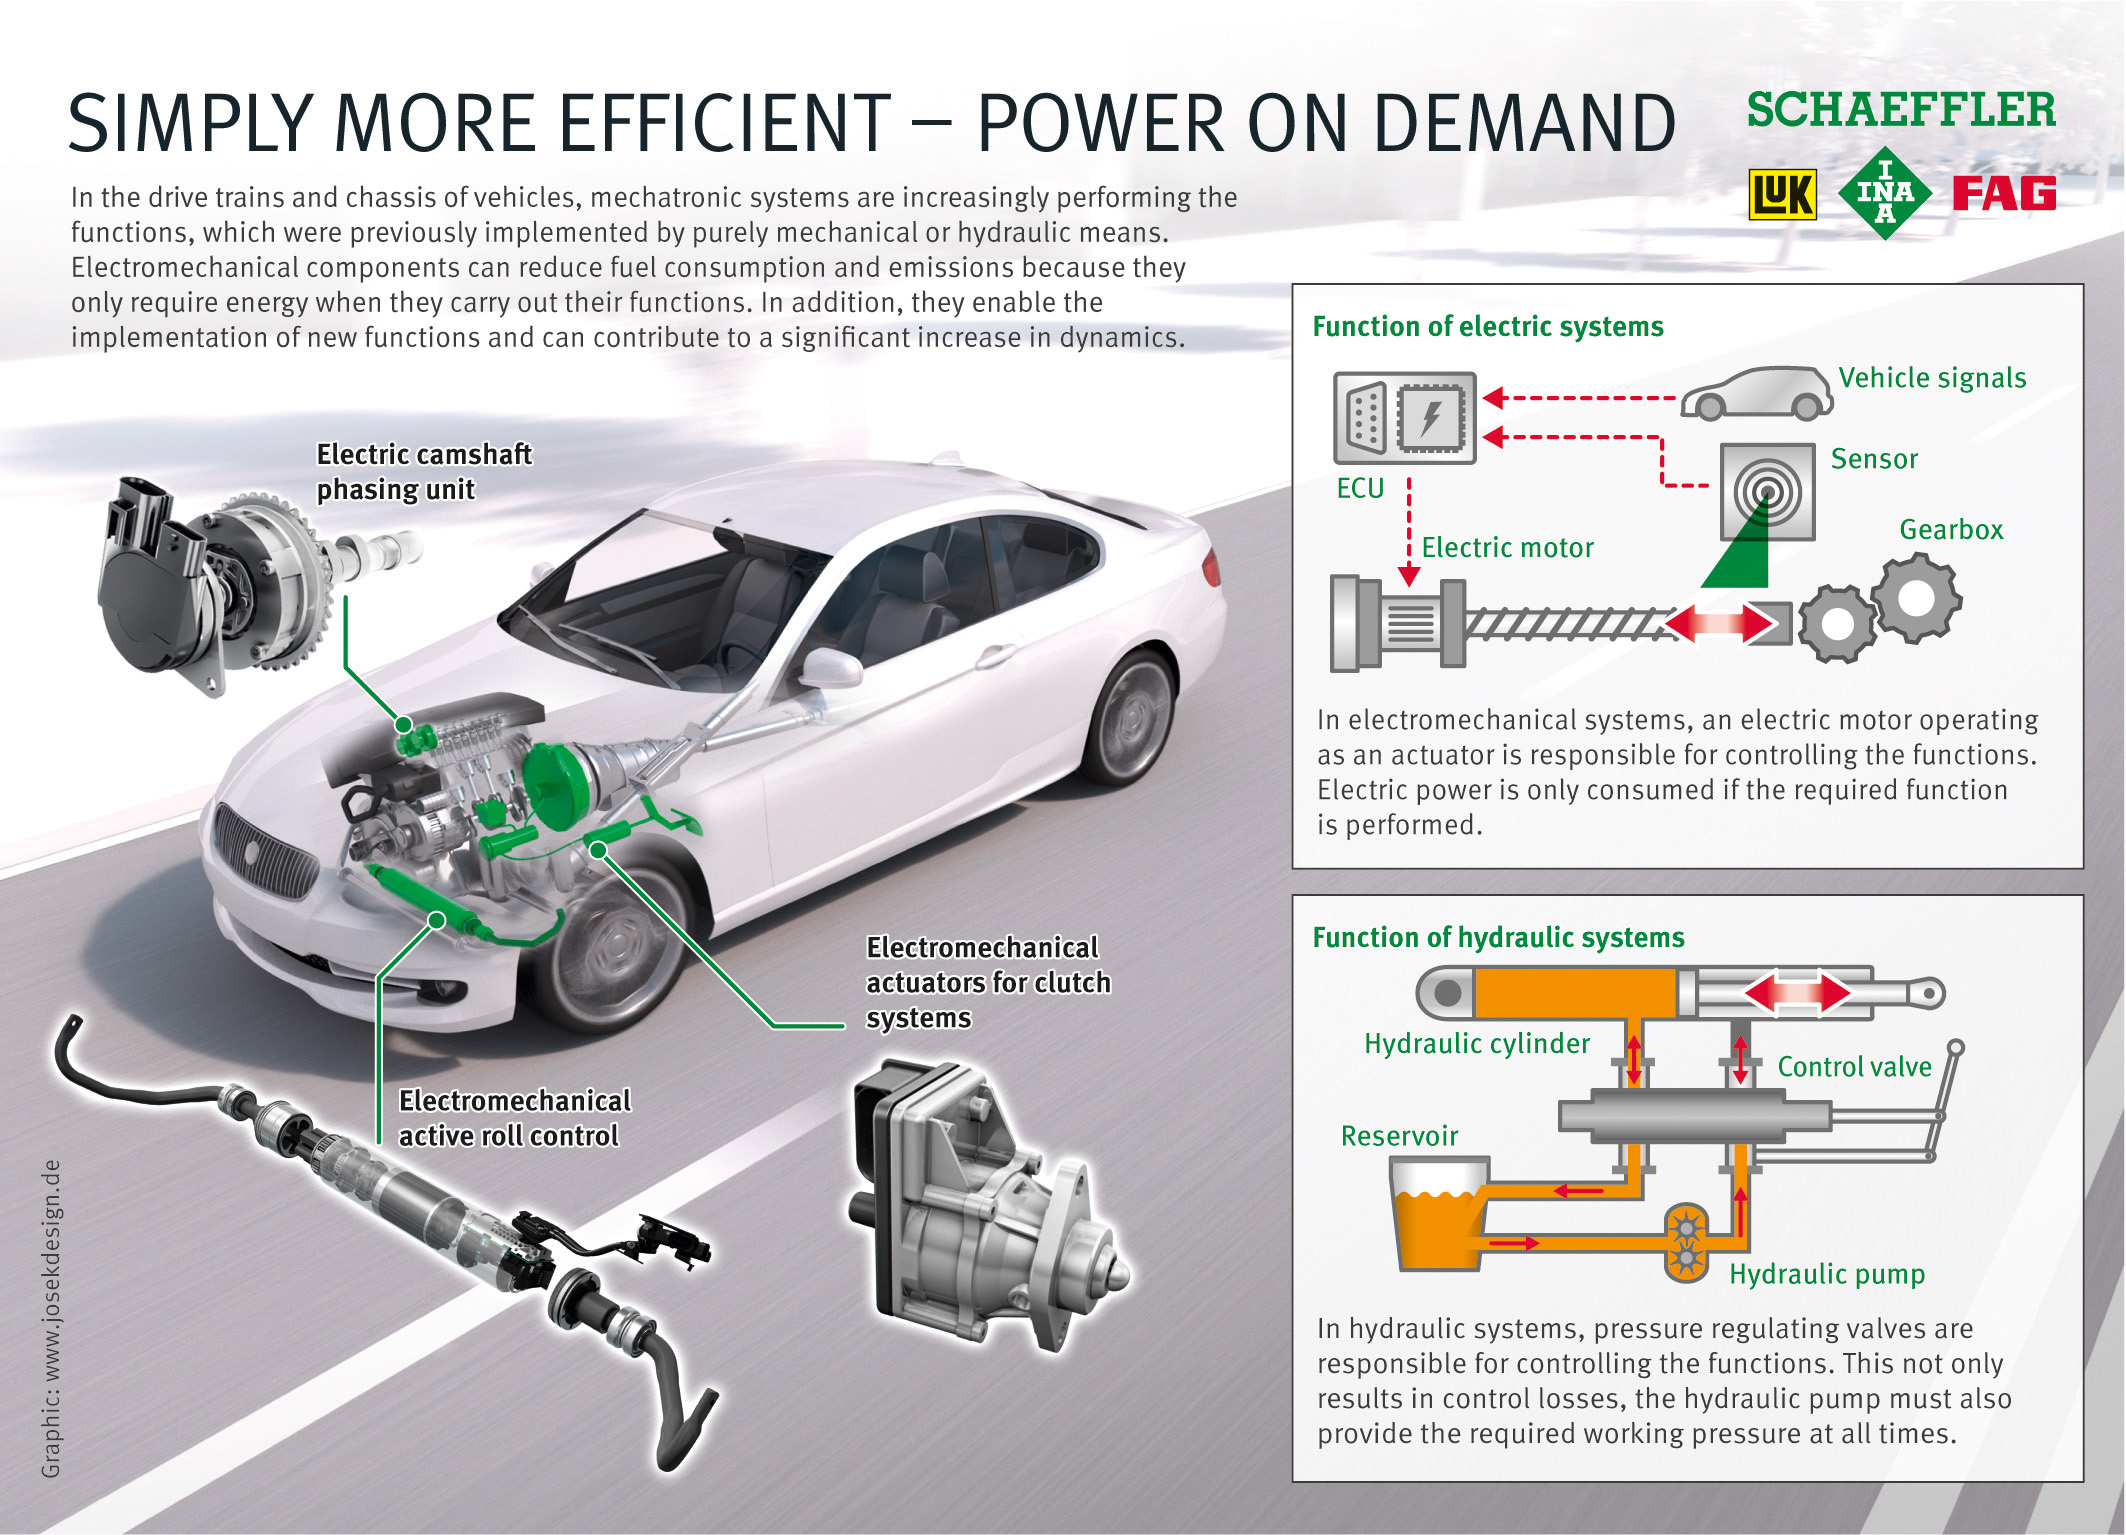 Schaeffler Power On Demand System